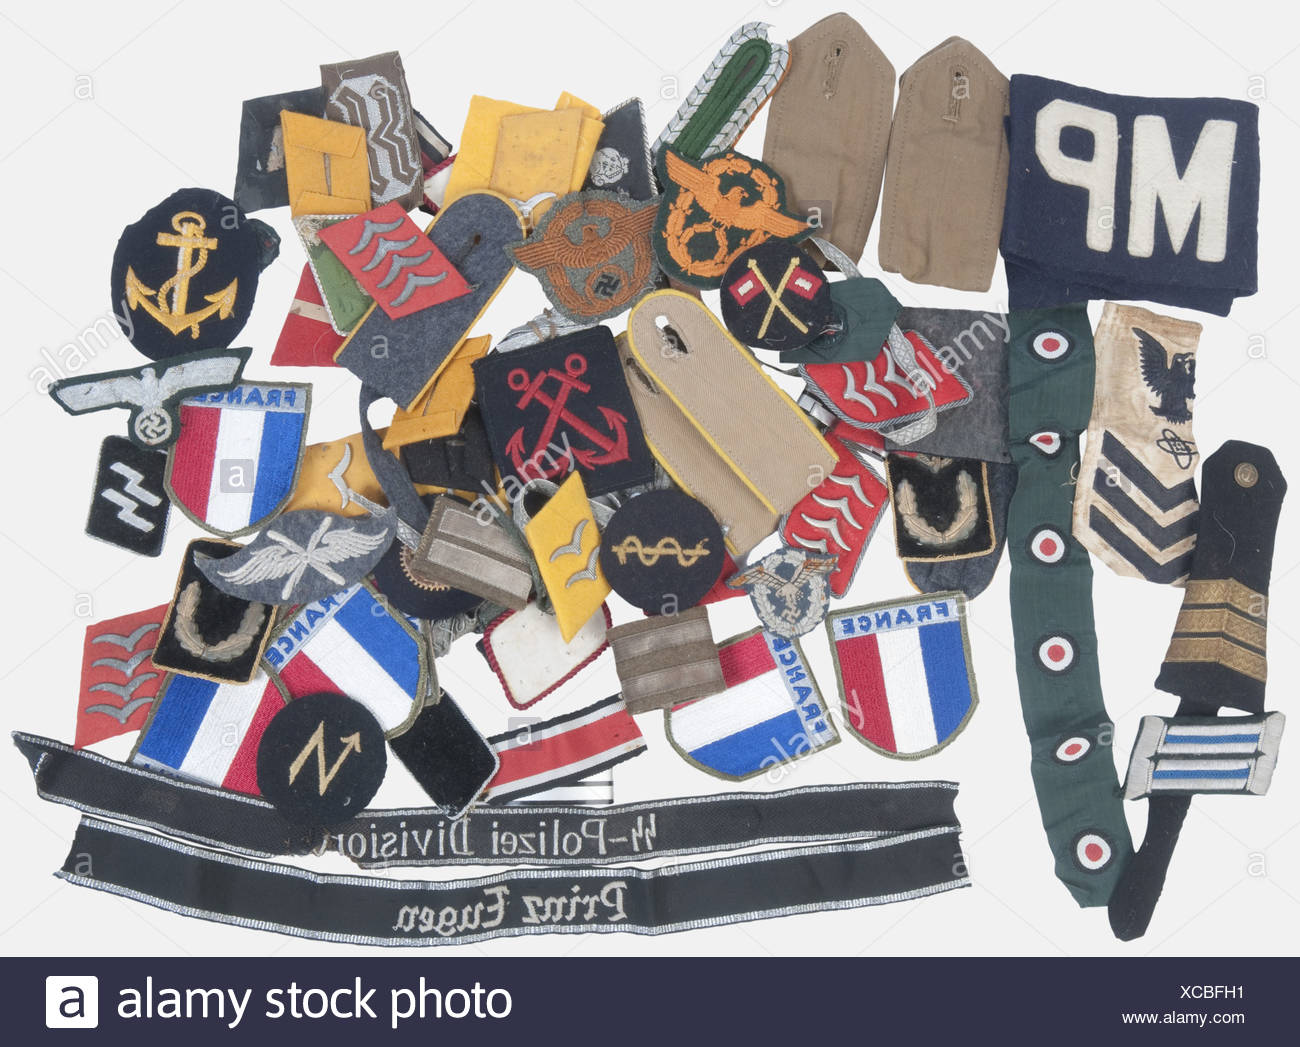 A big lot of various German Army cloth insignia., About 65 items, including sidecap cockades of the coastal artillery and various sleeve badges. We add repro Waffen SS cufftitles, French and US cloth insignia. historic, historical, 1930s, 1930s, 20th century, Wehrmacht, armed forces, army, NS, National Socialism, Nazism, Third Reich, German Reich, Germany, object, objects, stills, clipping, clippings, cut out, cut-out, cut-outs, utensil, piece of equipment, utensils, Additional-Rights-Clearances-NA - Stock Image